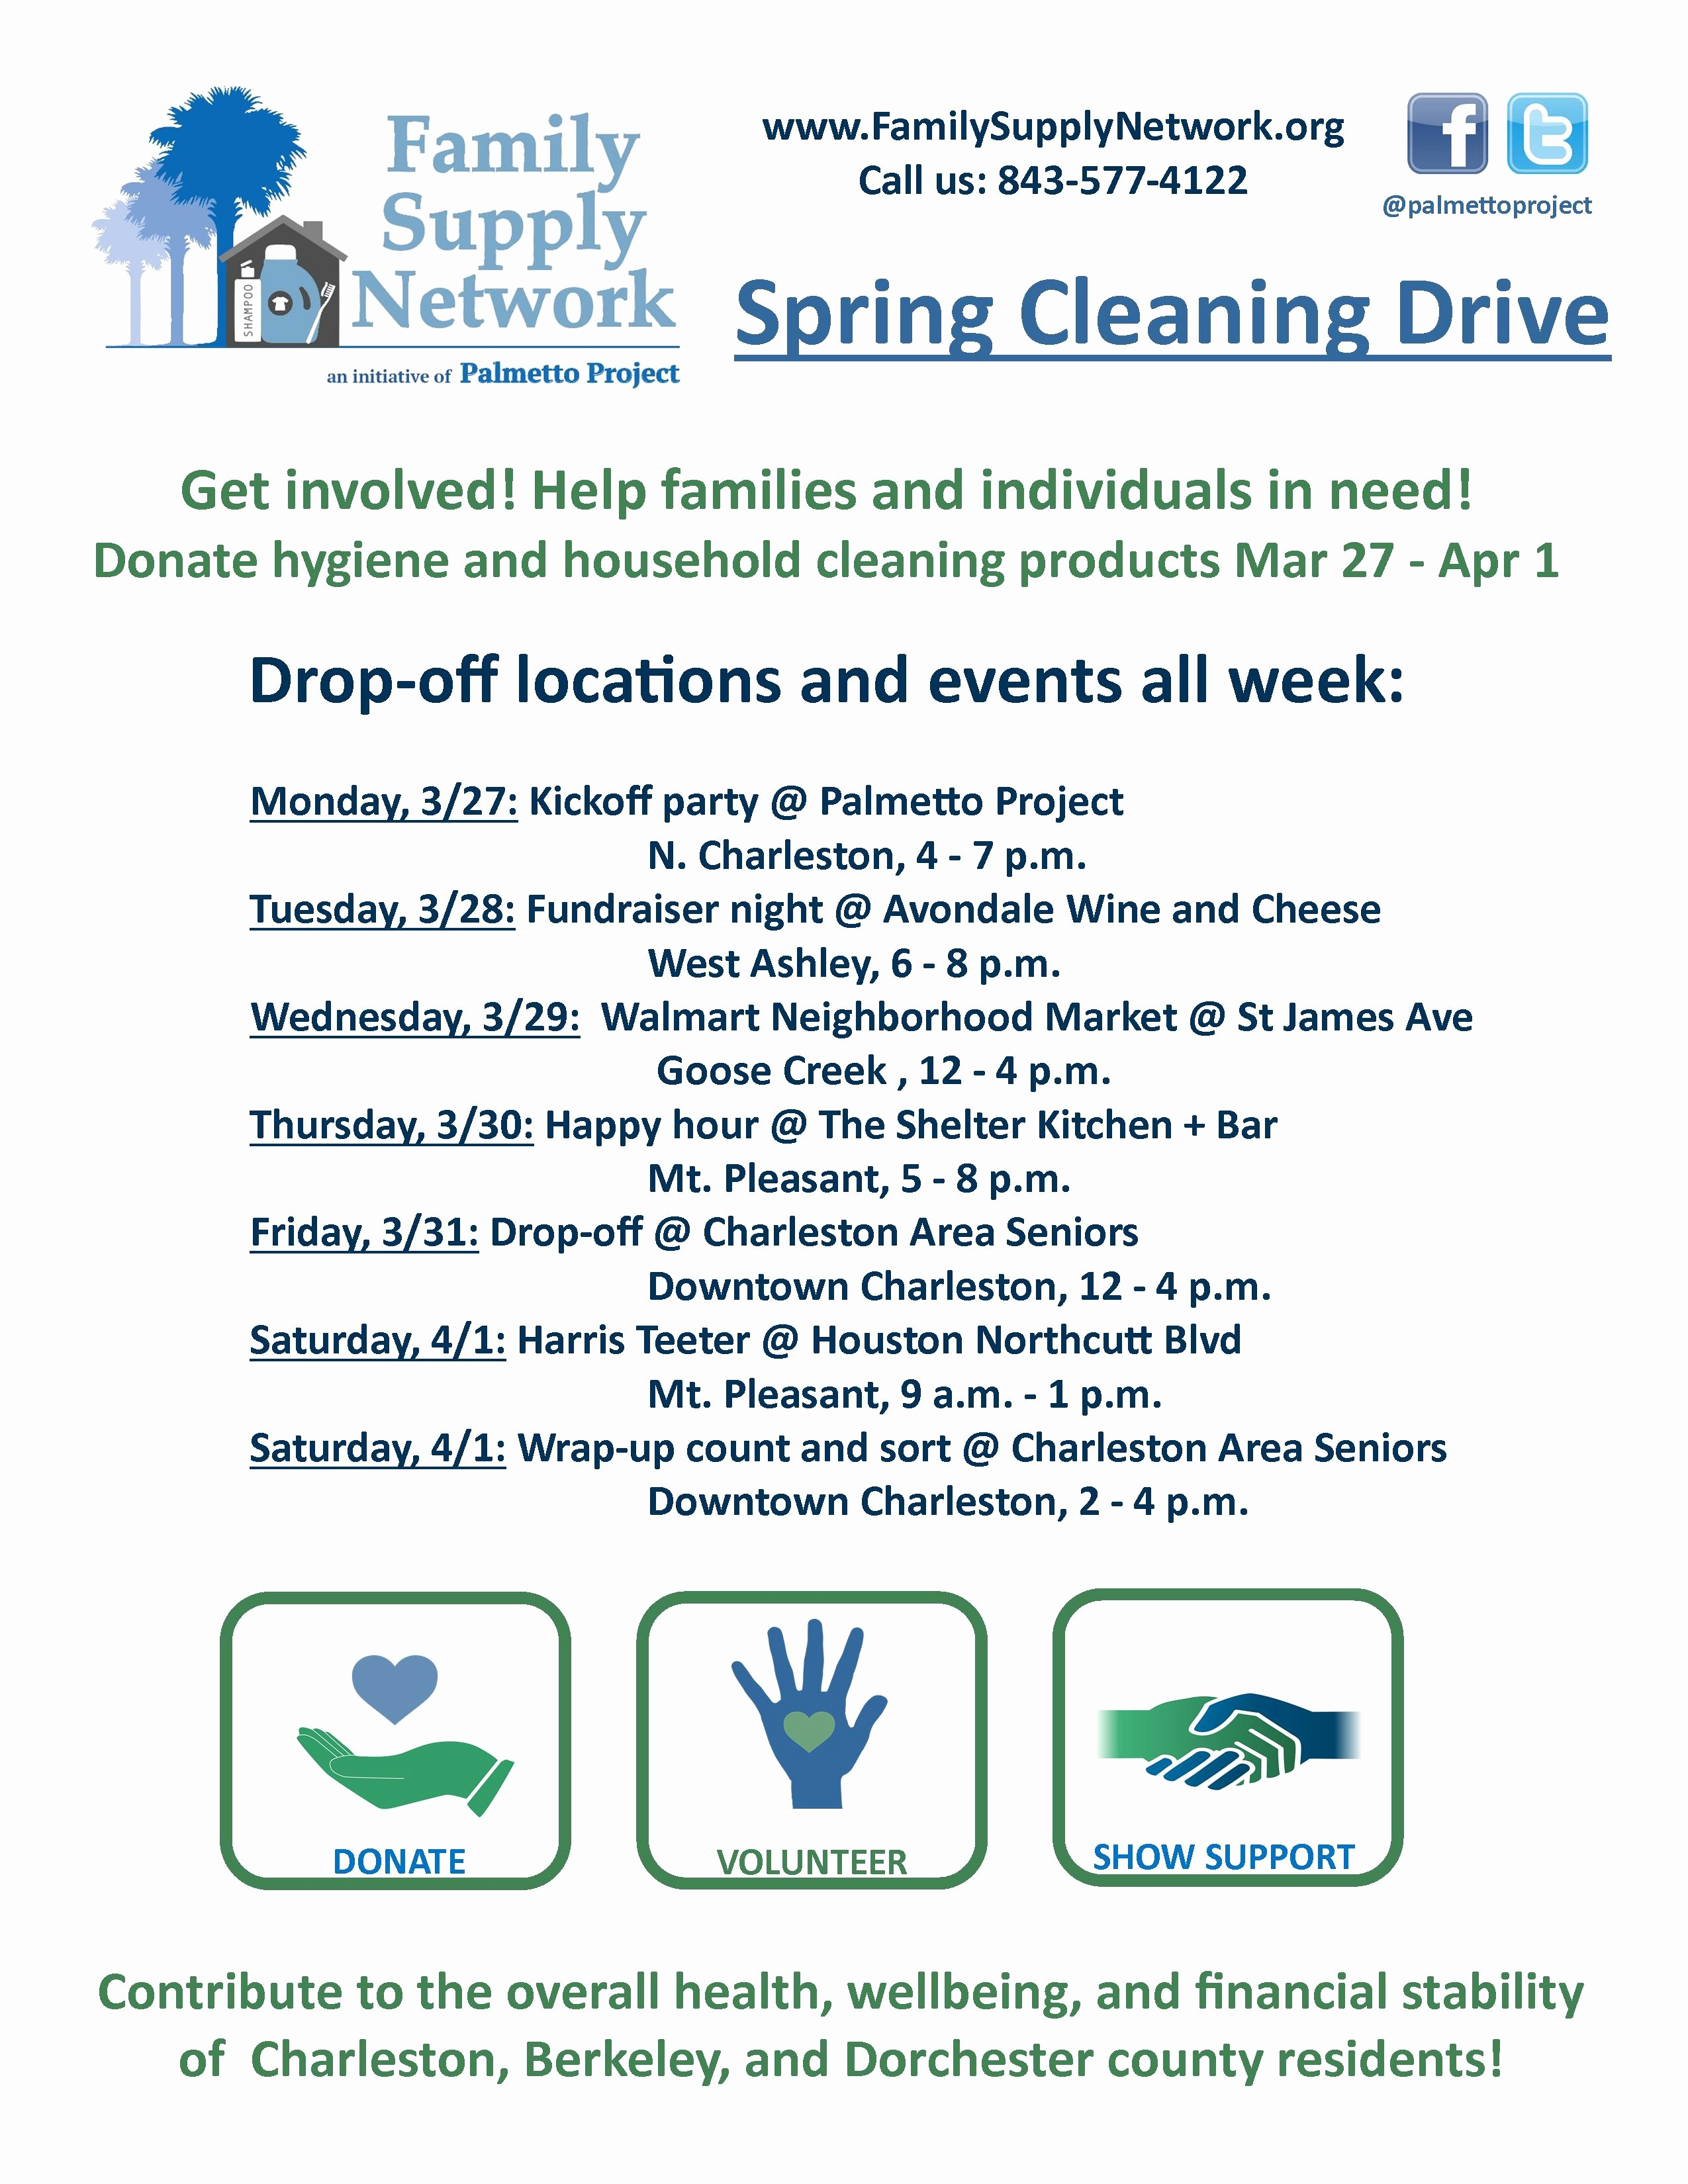 Office Clean Up Day Flyer Elegant Announcing Our First Annual Spring Cleaning Drive Mar 27